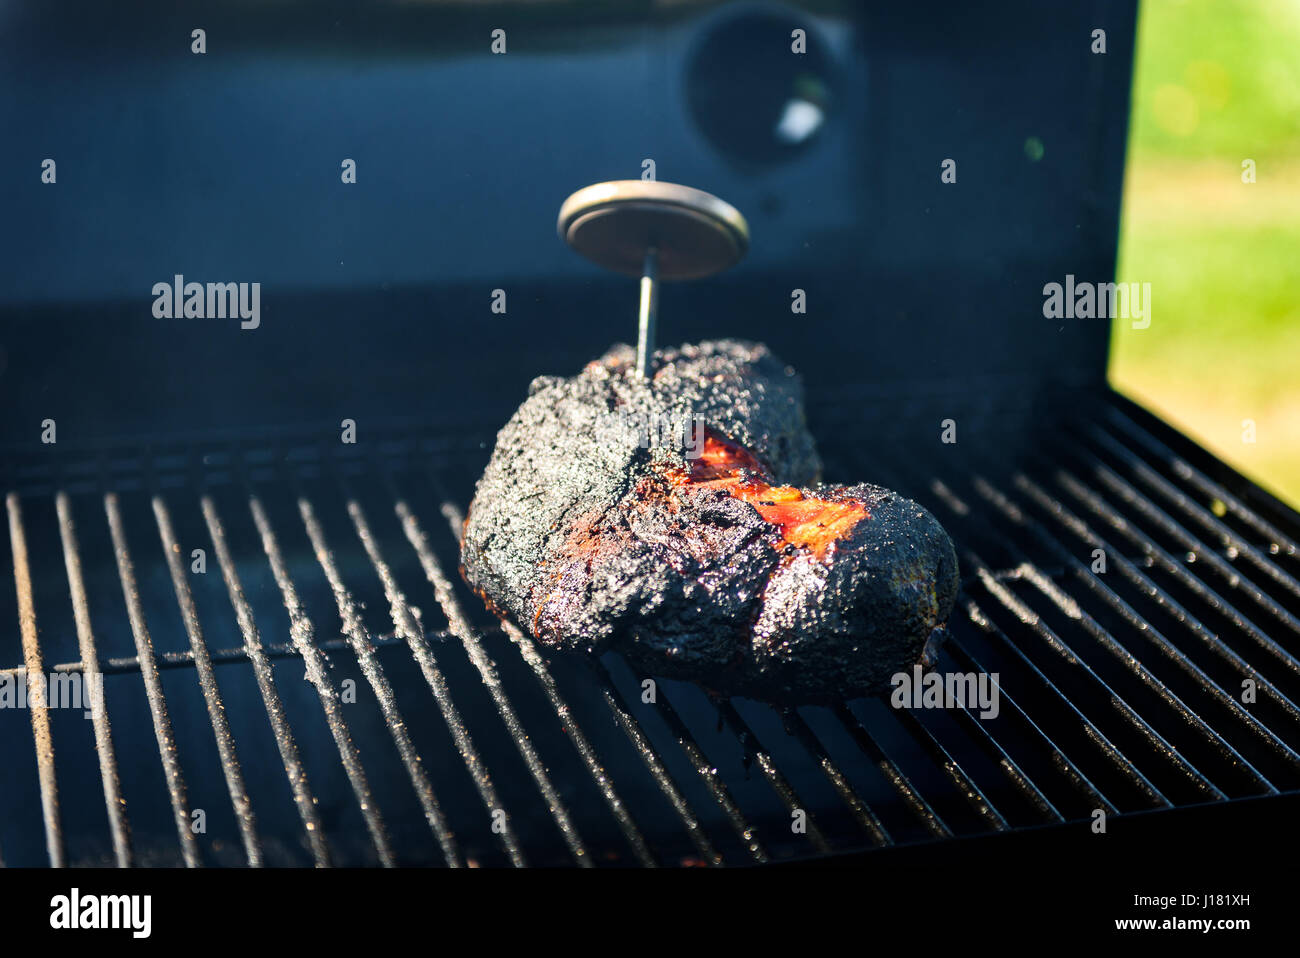 family backyard barbecue - BBQ picnic. Checking the correct temperature with meat thermometer. - Stock Image